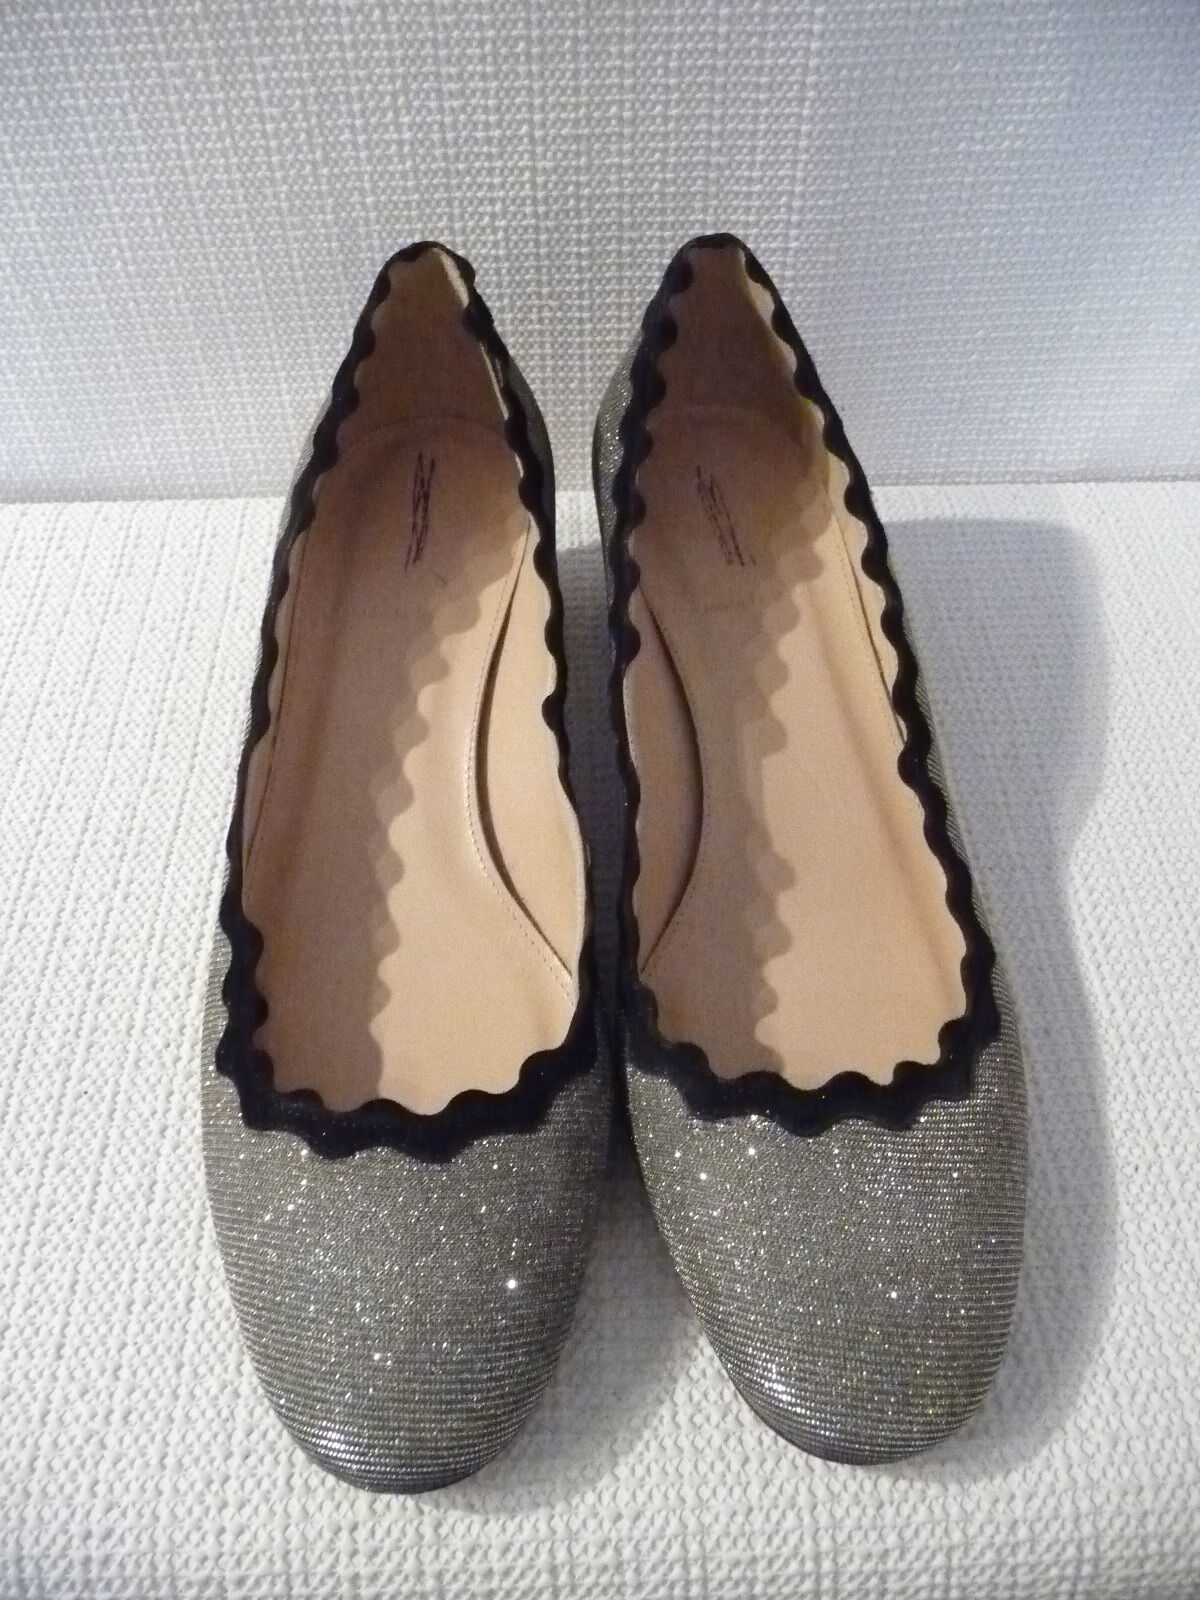 NEW J.CREW METALLIC GLITTER SCALLOPED HEELS IN METALLIC J.CREW GUNMETAL, F8606, SIZE 8.5,  248 a358d0